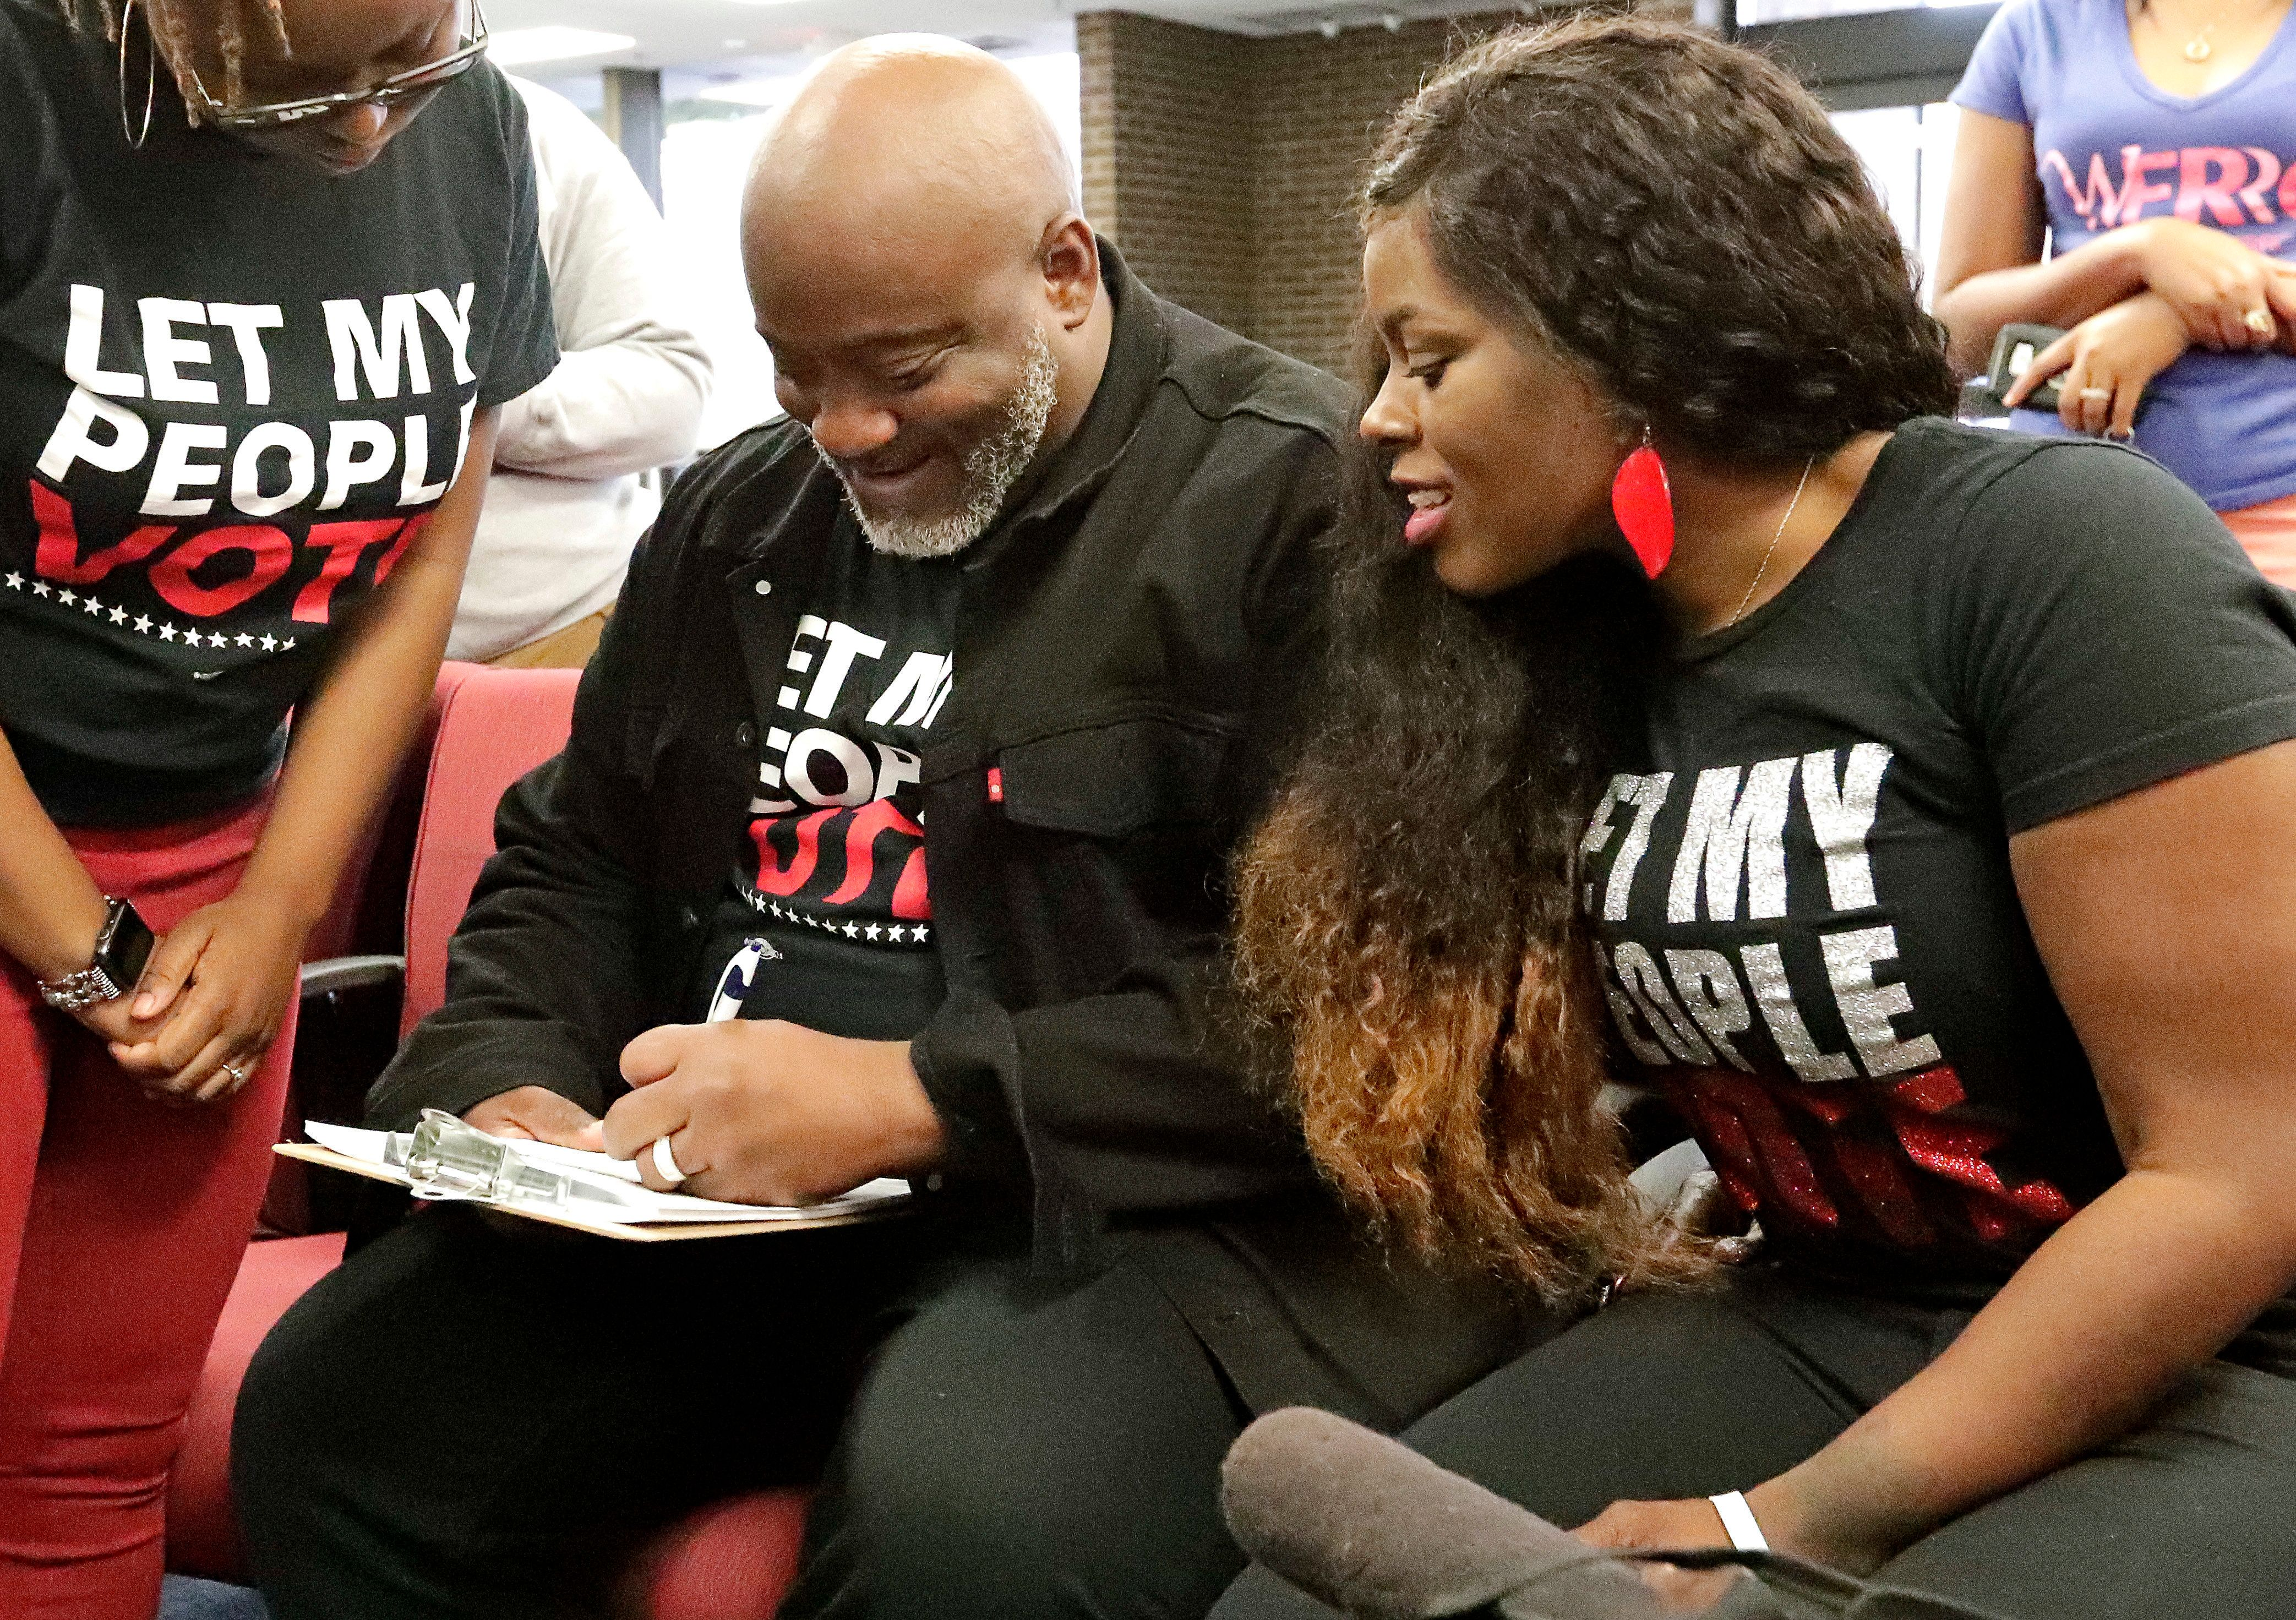 Former felon Desmond Meade and president of the Florida Rights Restoration Coalition, left, fills out a voter registration form as his wife Sheena looks on at the Supervisor of Elections office Tuesday, Jan. 8, 2019, in Orlando, Fla. Former felons in Florida began registering for elections on Tuesday, when an amendment that restores their voting rights went into effect. (AP Photo/John Raoux)